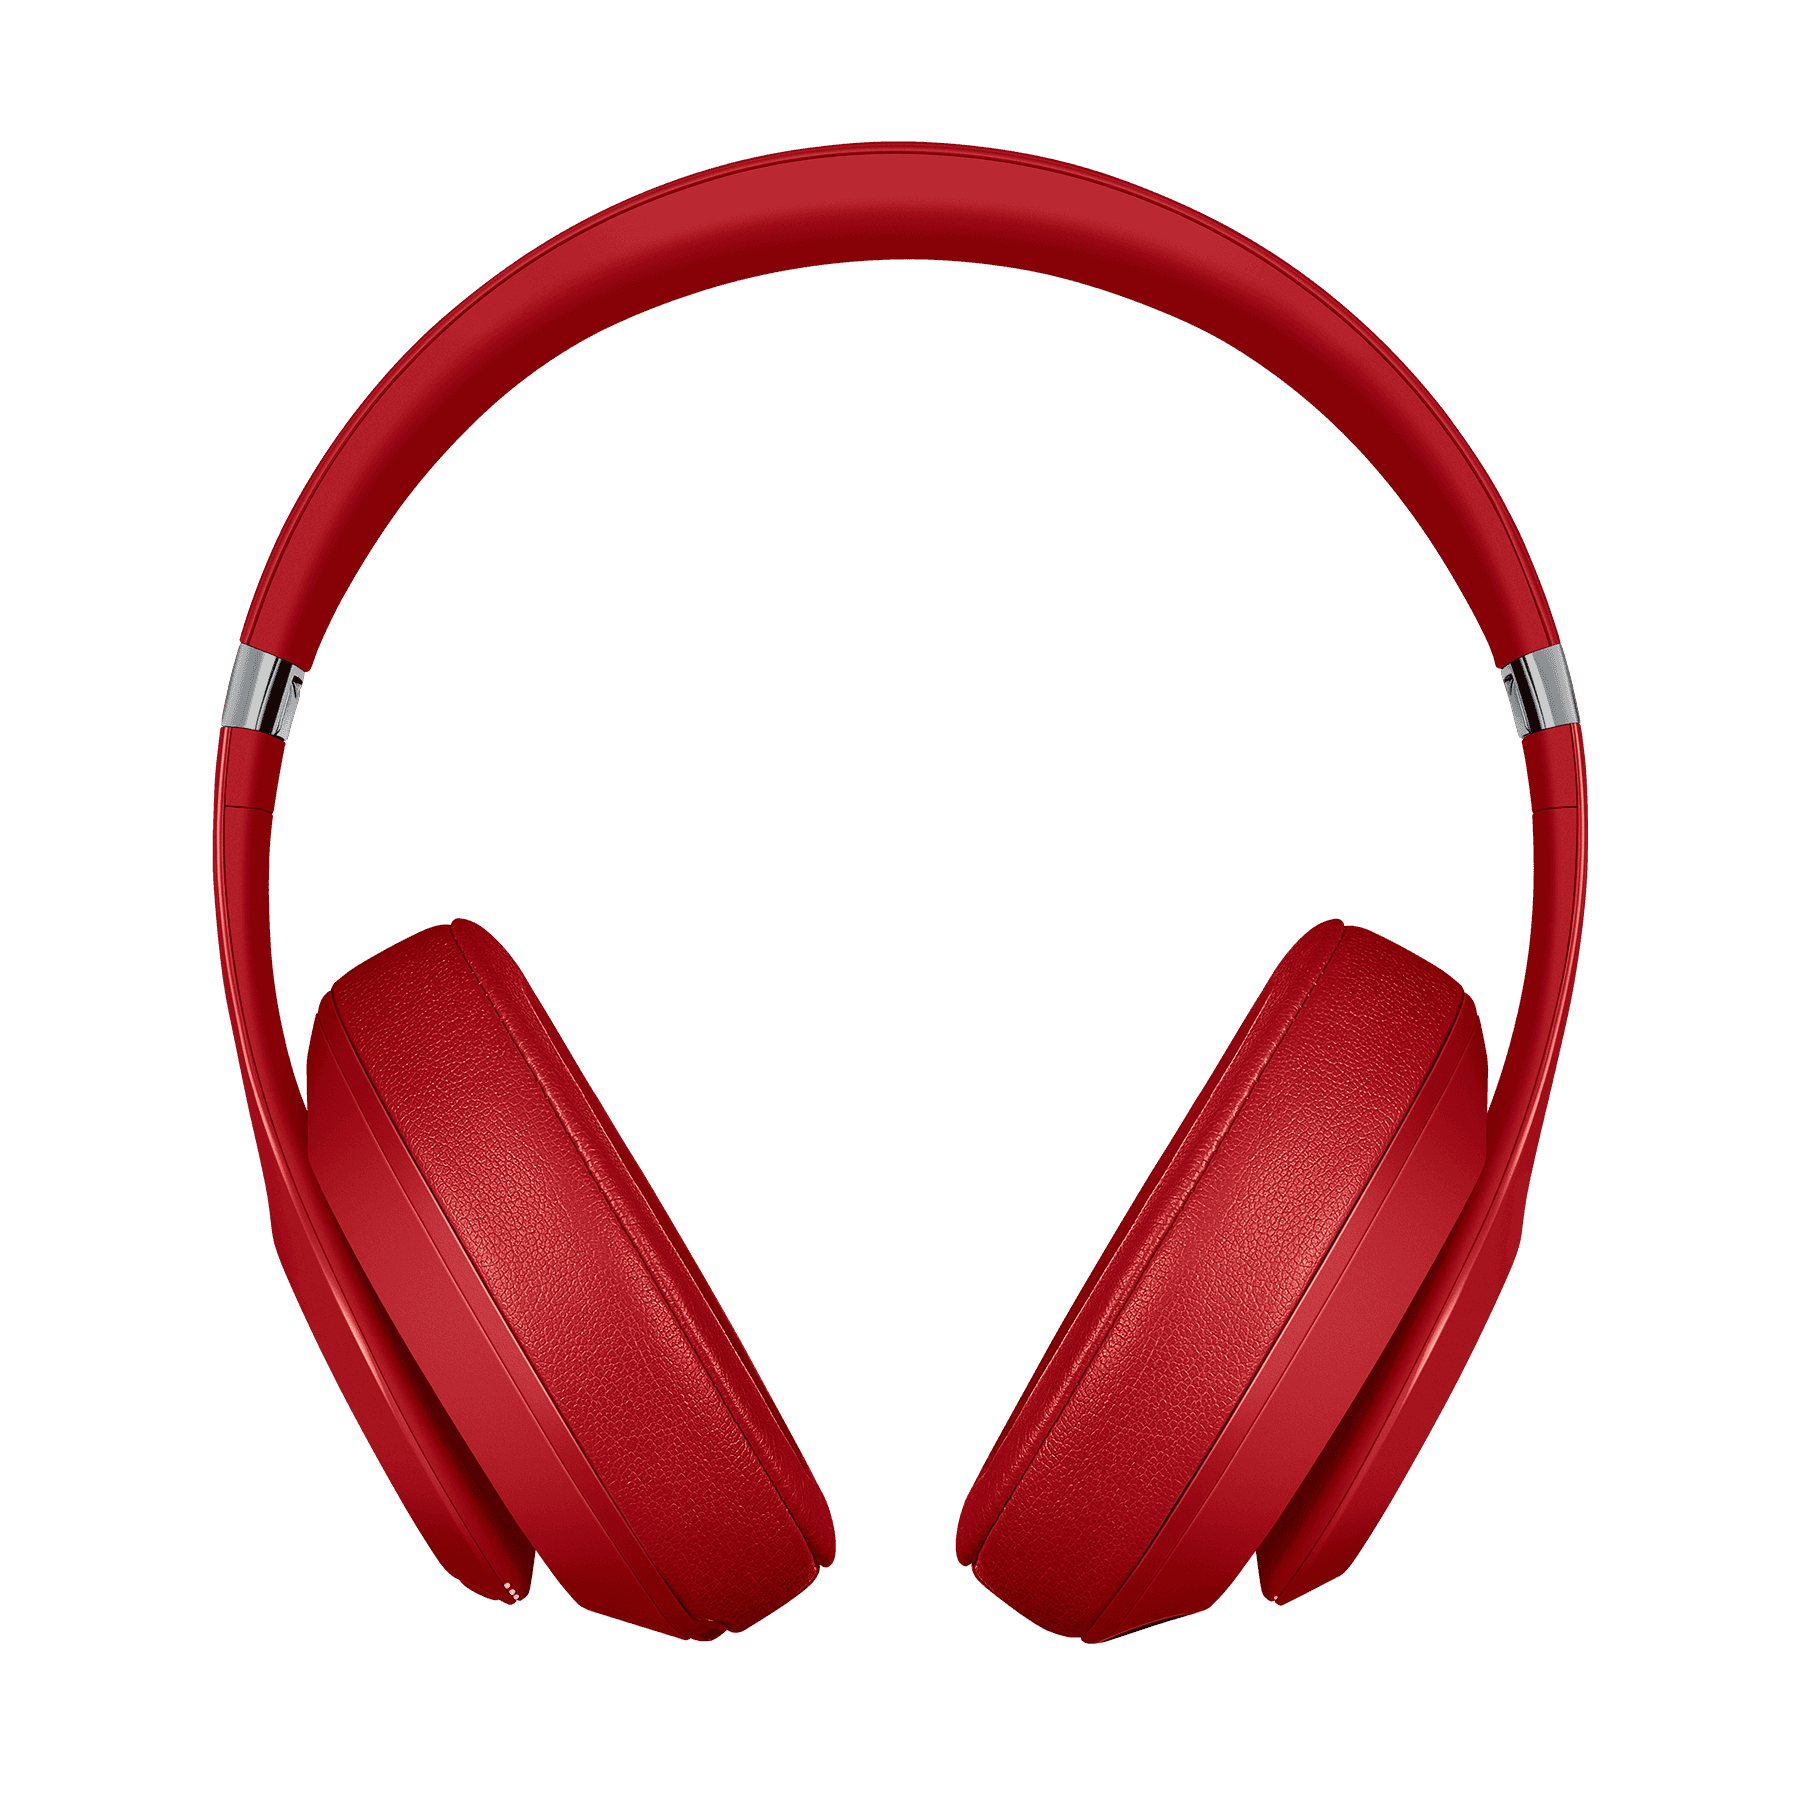 Beats Studio3 Wireless By Dre Usb Headset With Microphone Wiring Diagram